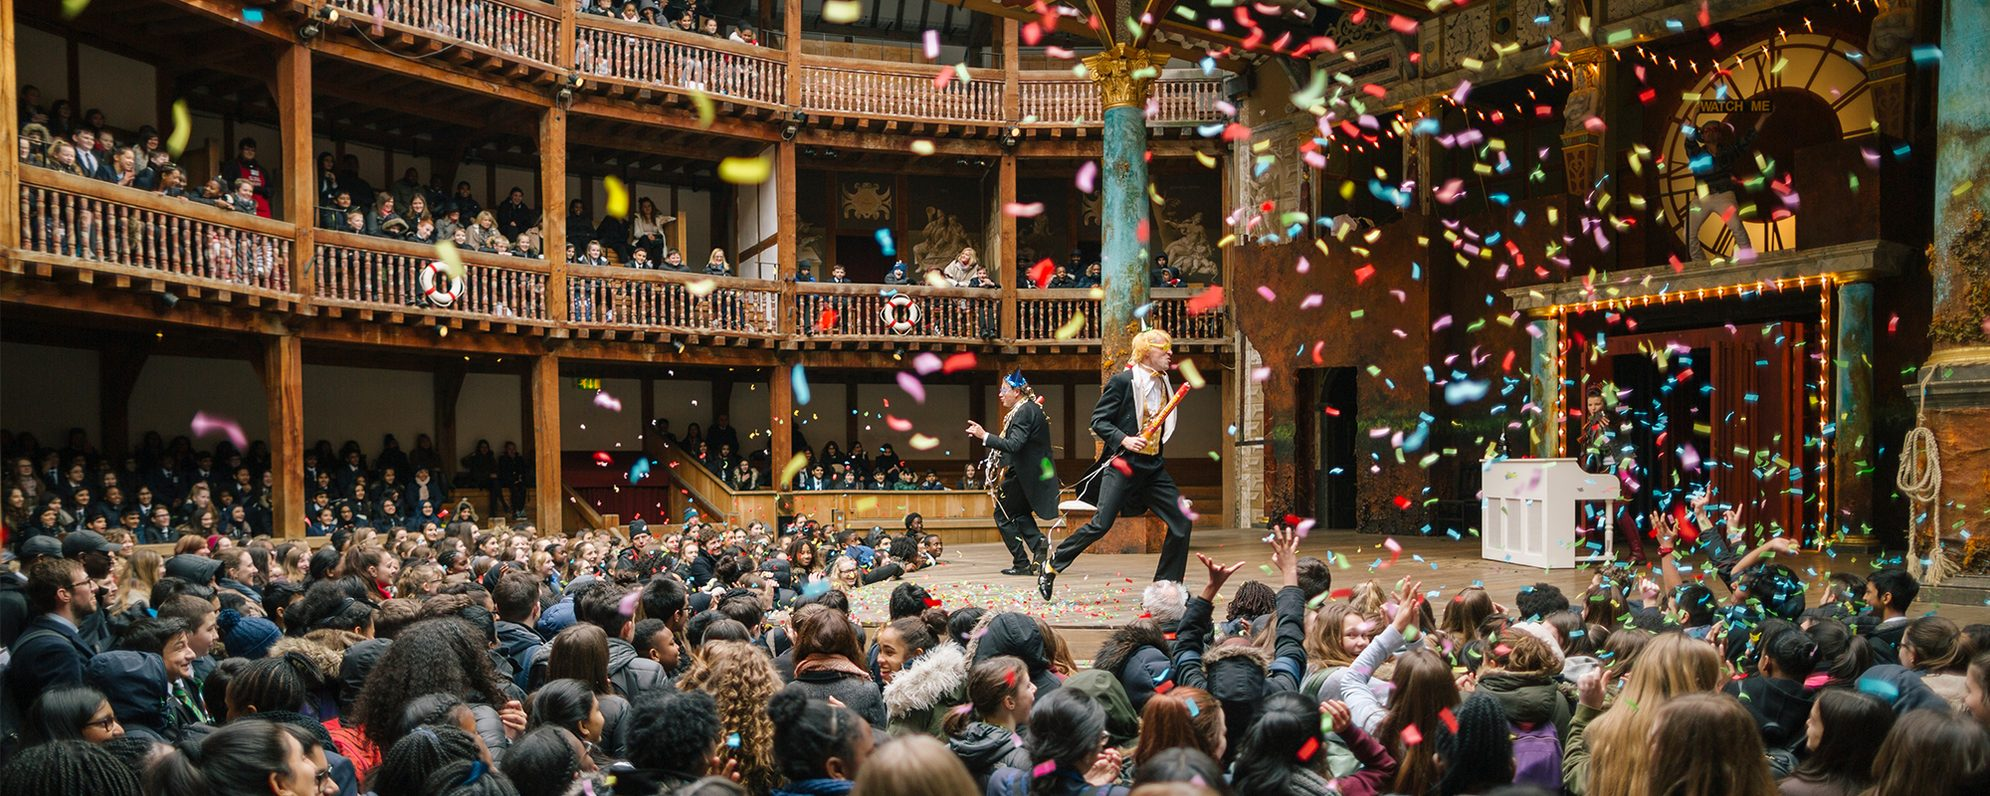 Sir Toby and Sir Andrew from Twelfth Night, dance around the stage as colourful confetti rains over them and the groundlings in the yard.